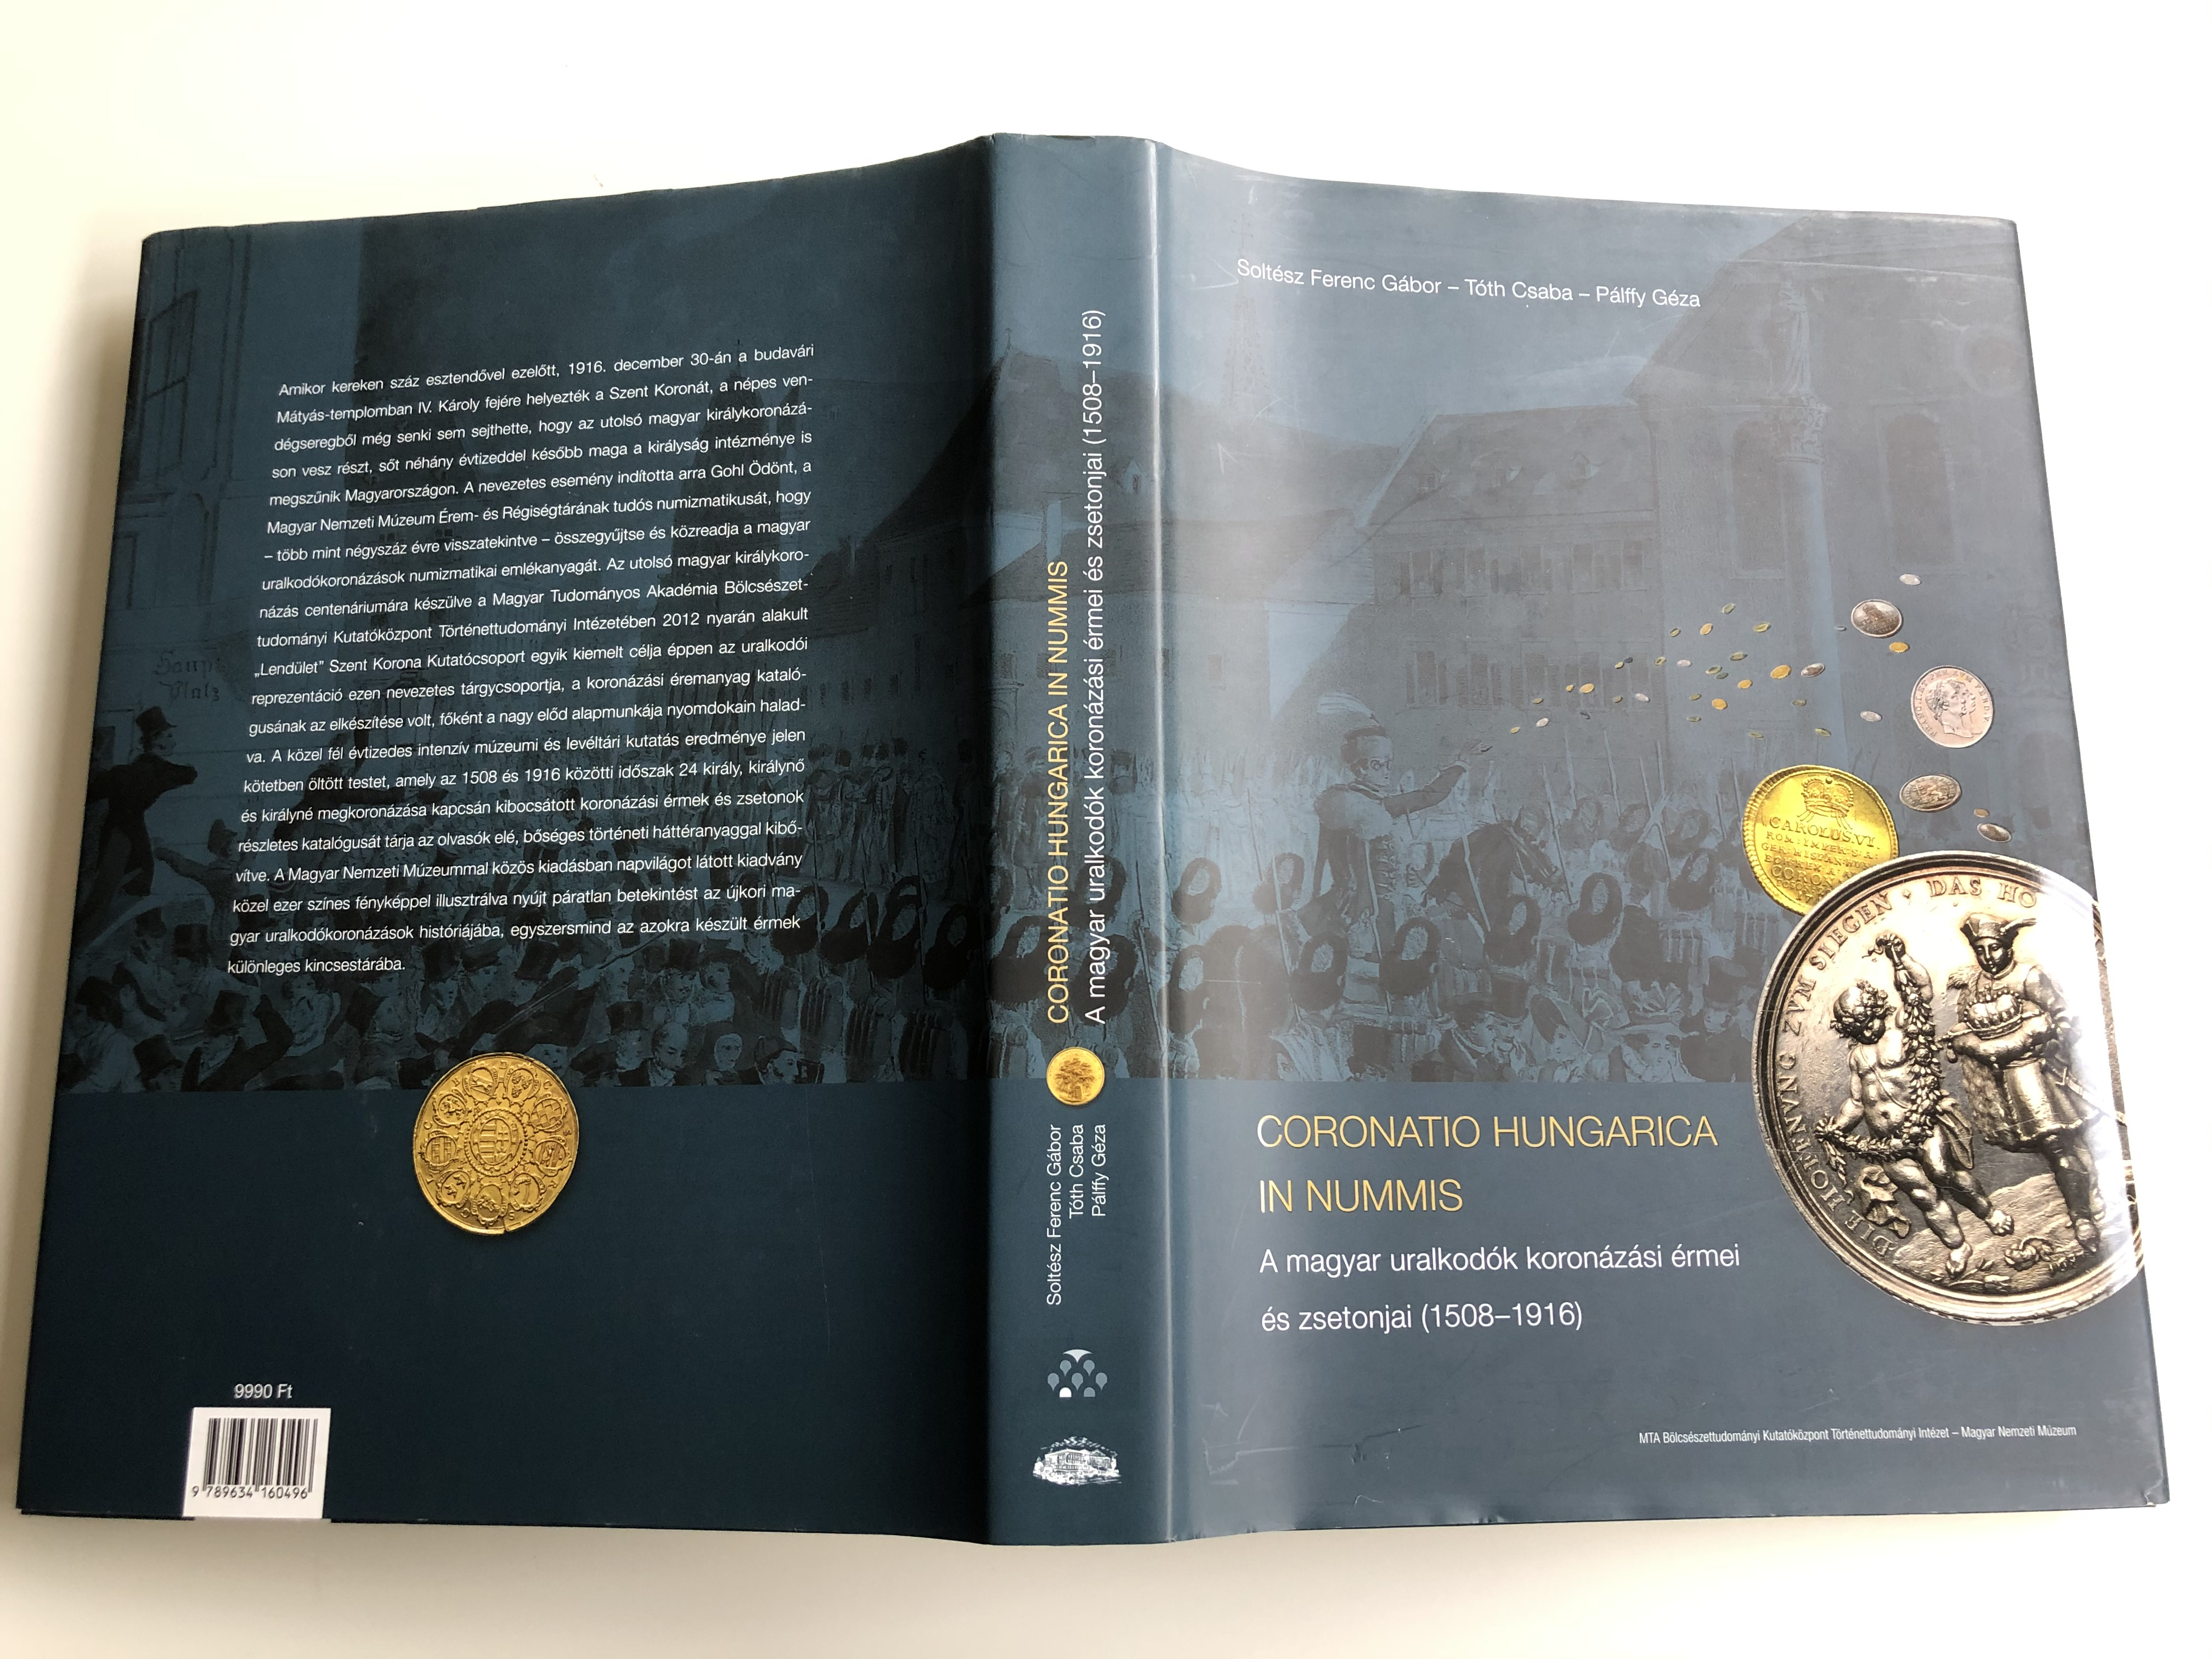 -catalog-of-hungarian-coins-of-rulers-from-1508-1916-coronatio-hungarica-in-nummis-25.jpg